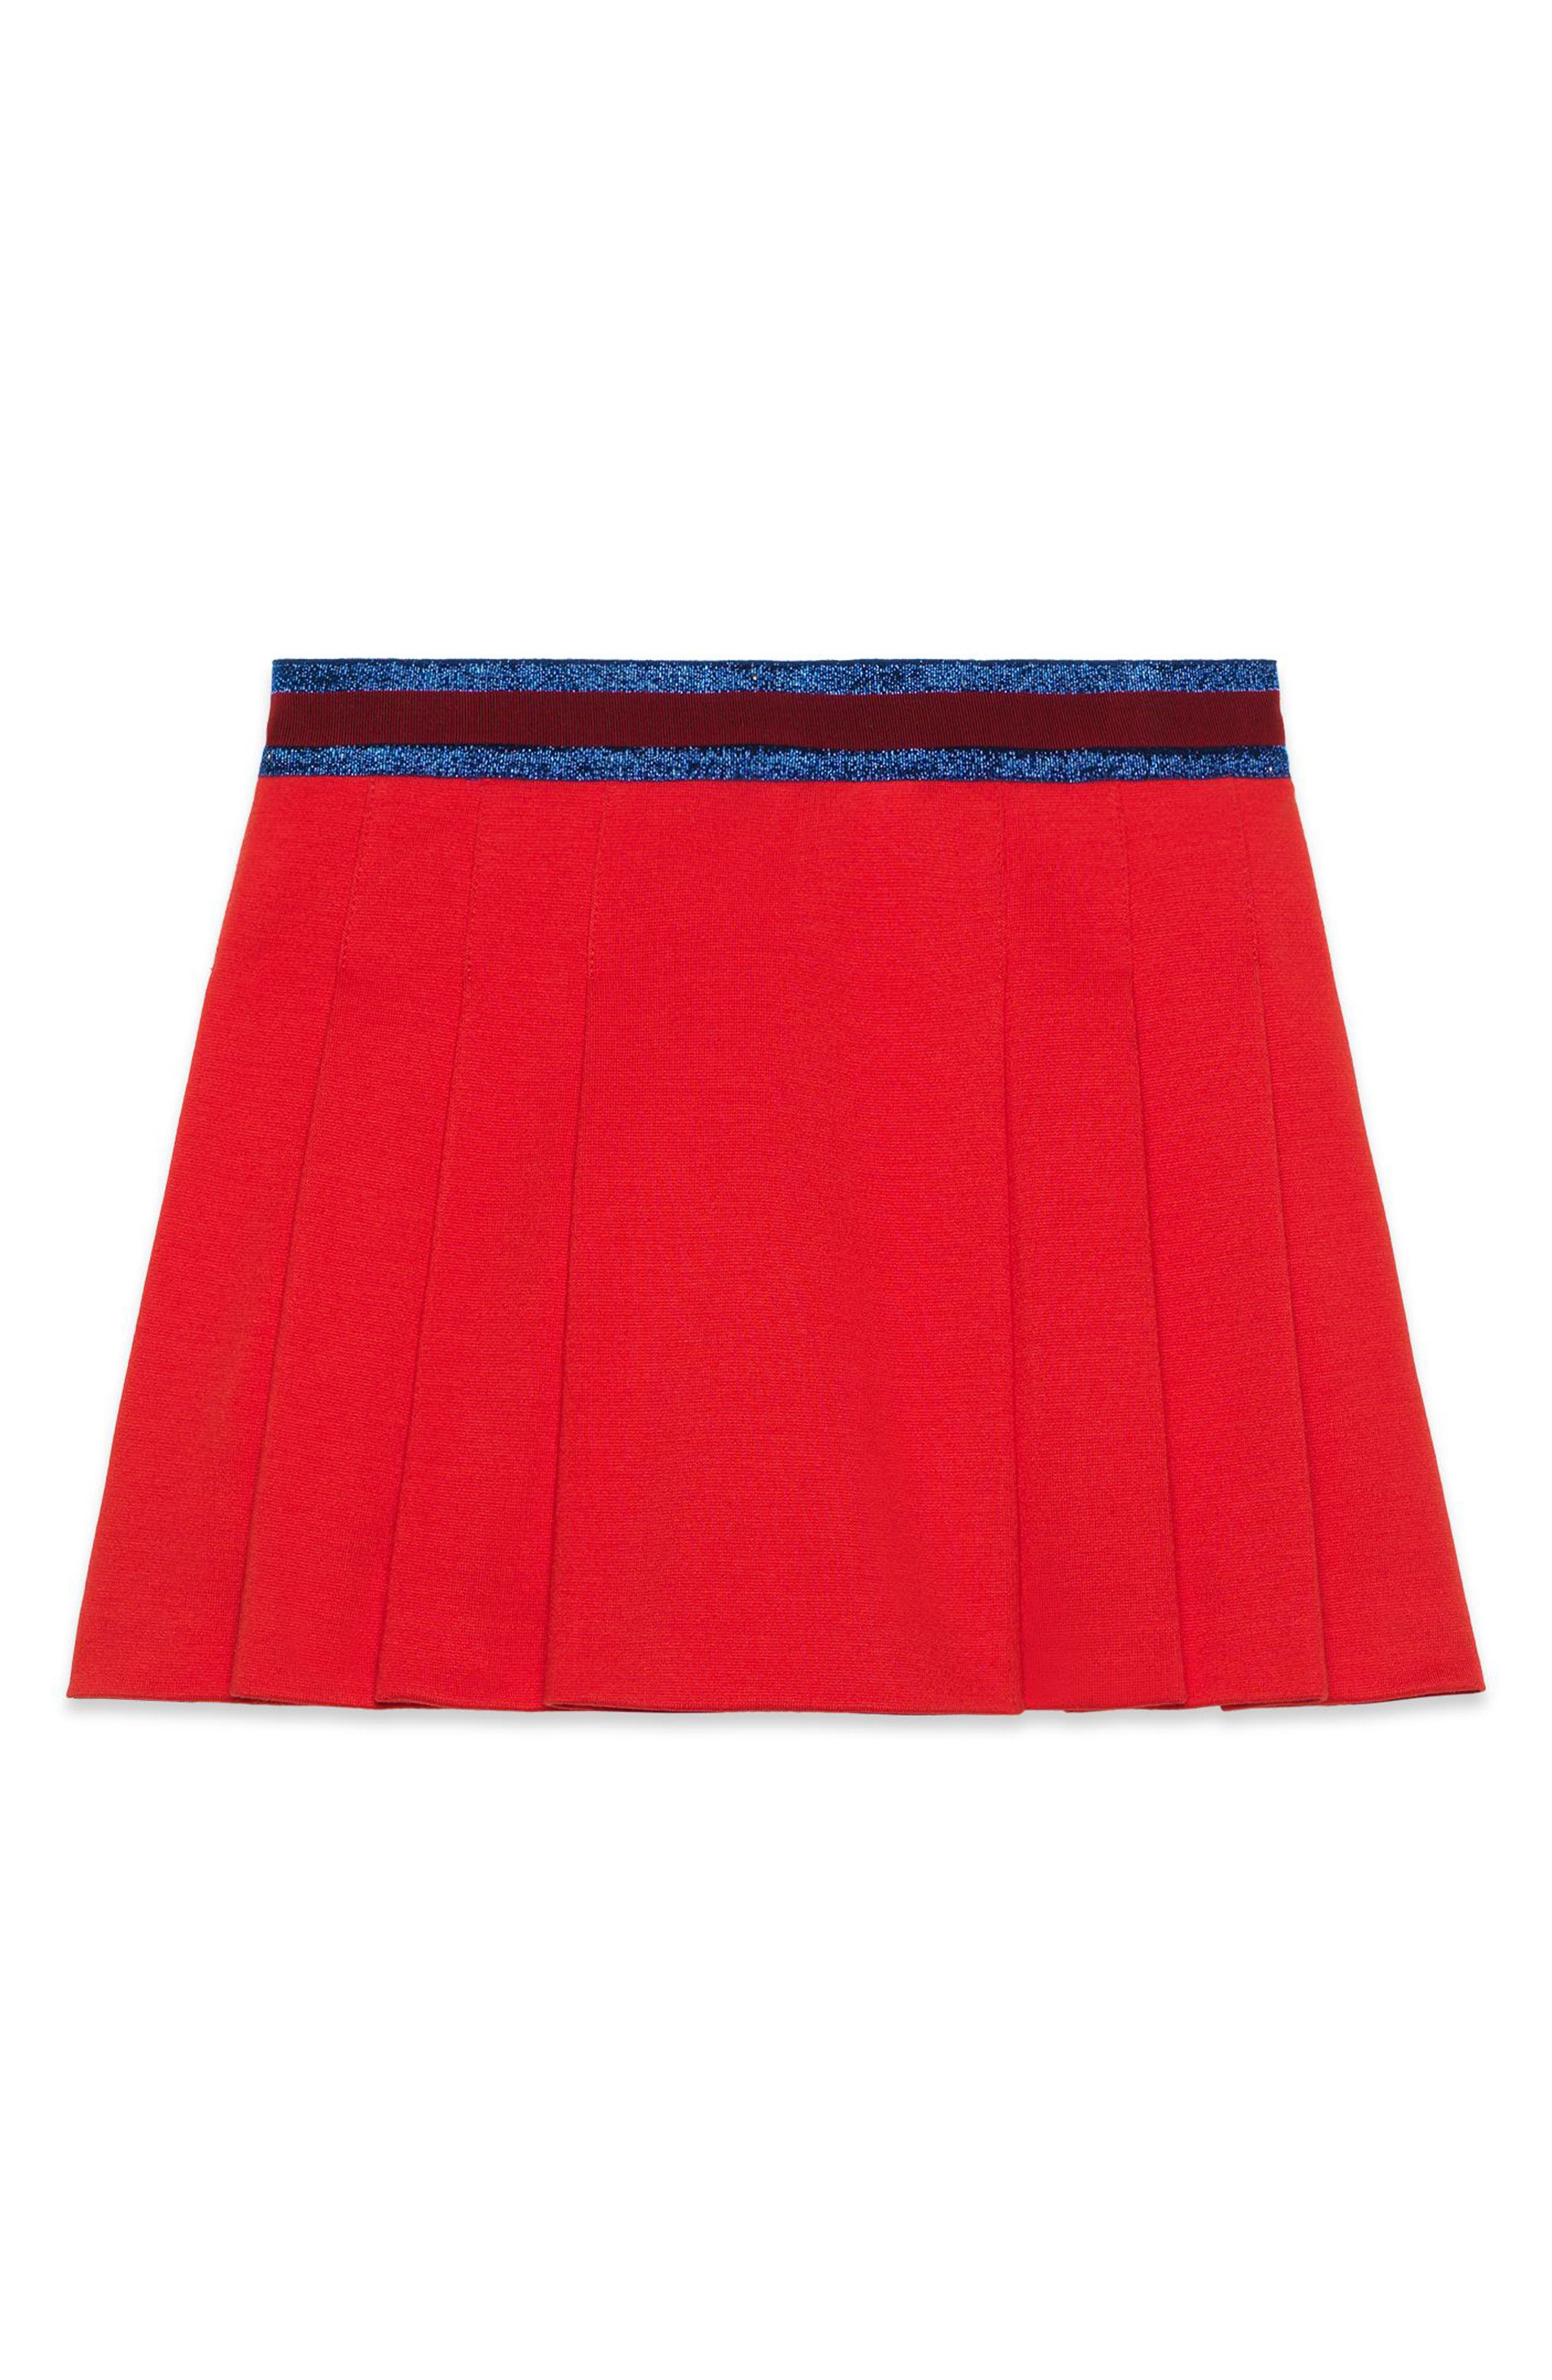 Pleated Jersey Skirt,                             Main thumbnail 1, color,                             Red Multi